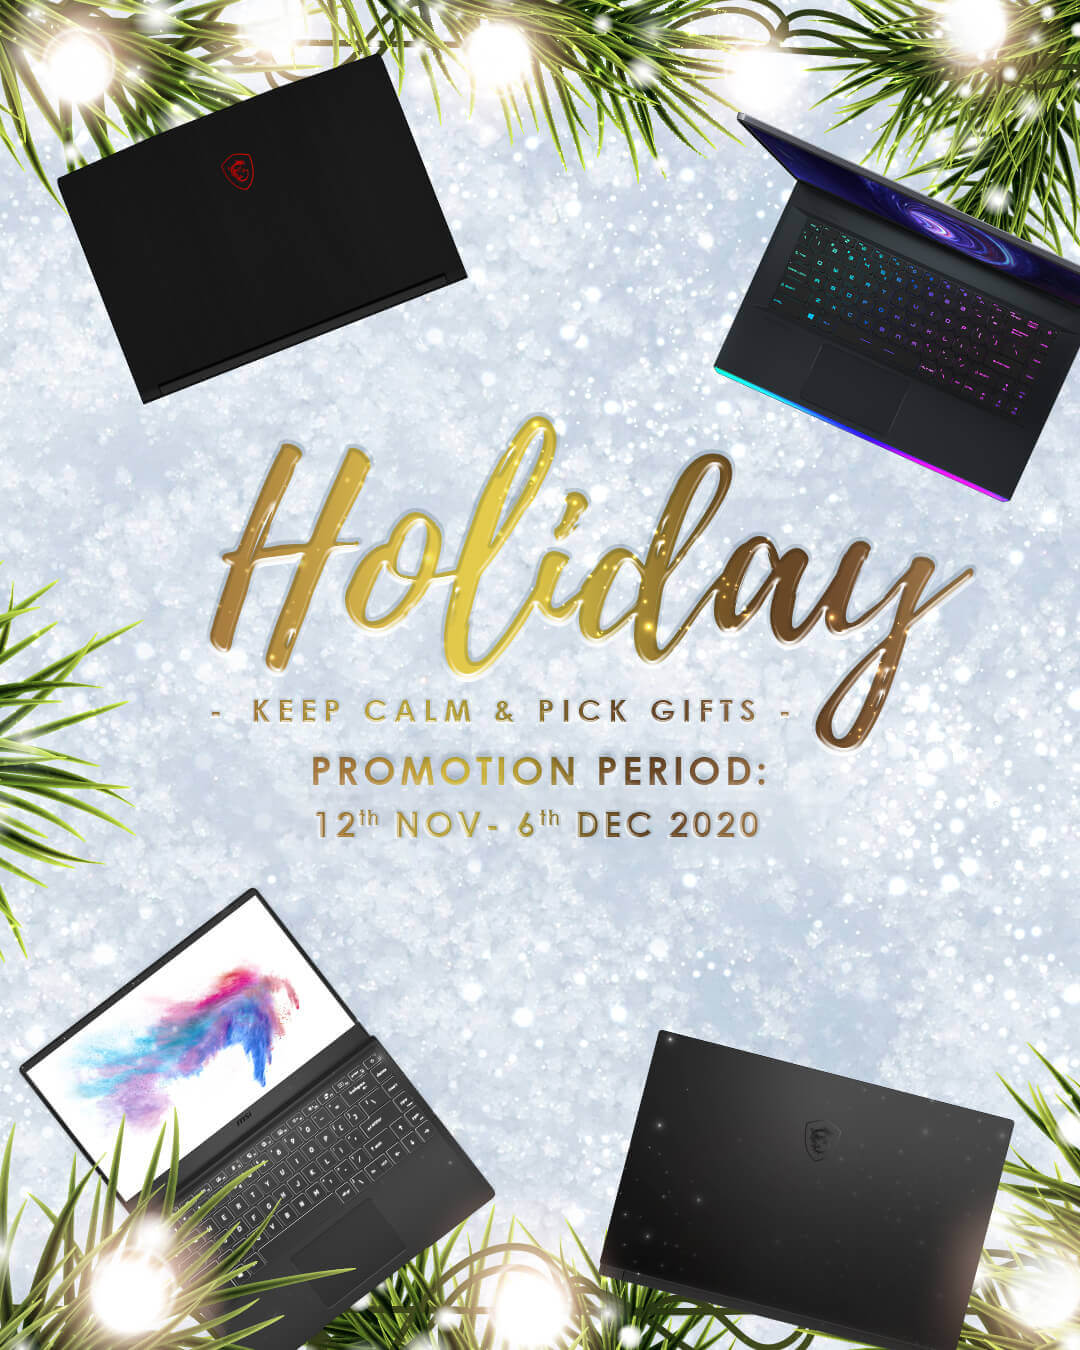 Holiday - Keep Calm & Pick Gifts